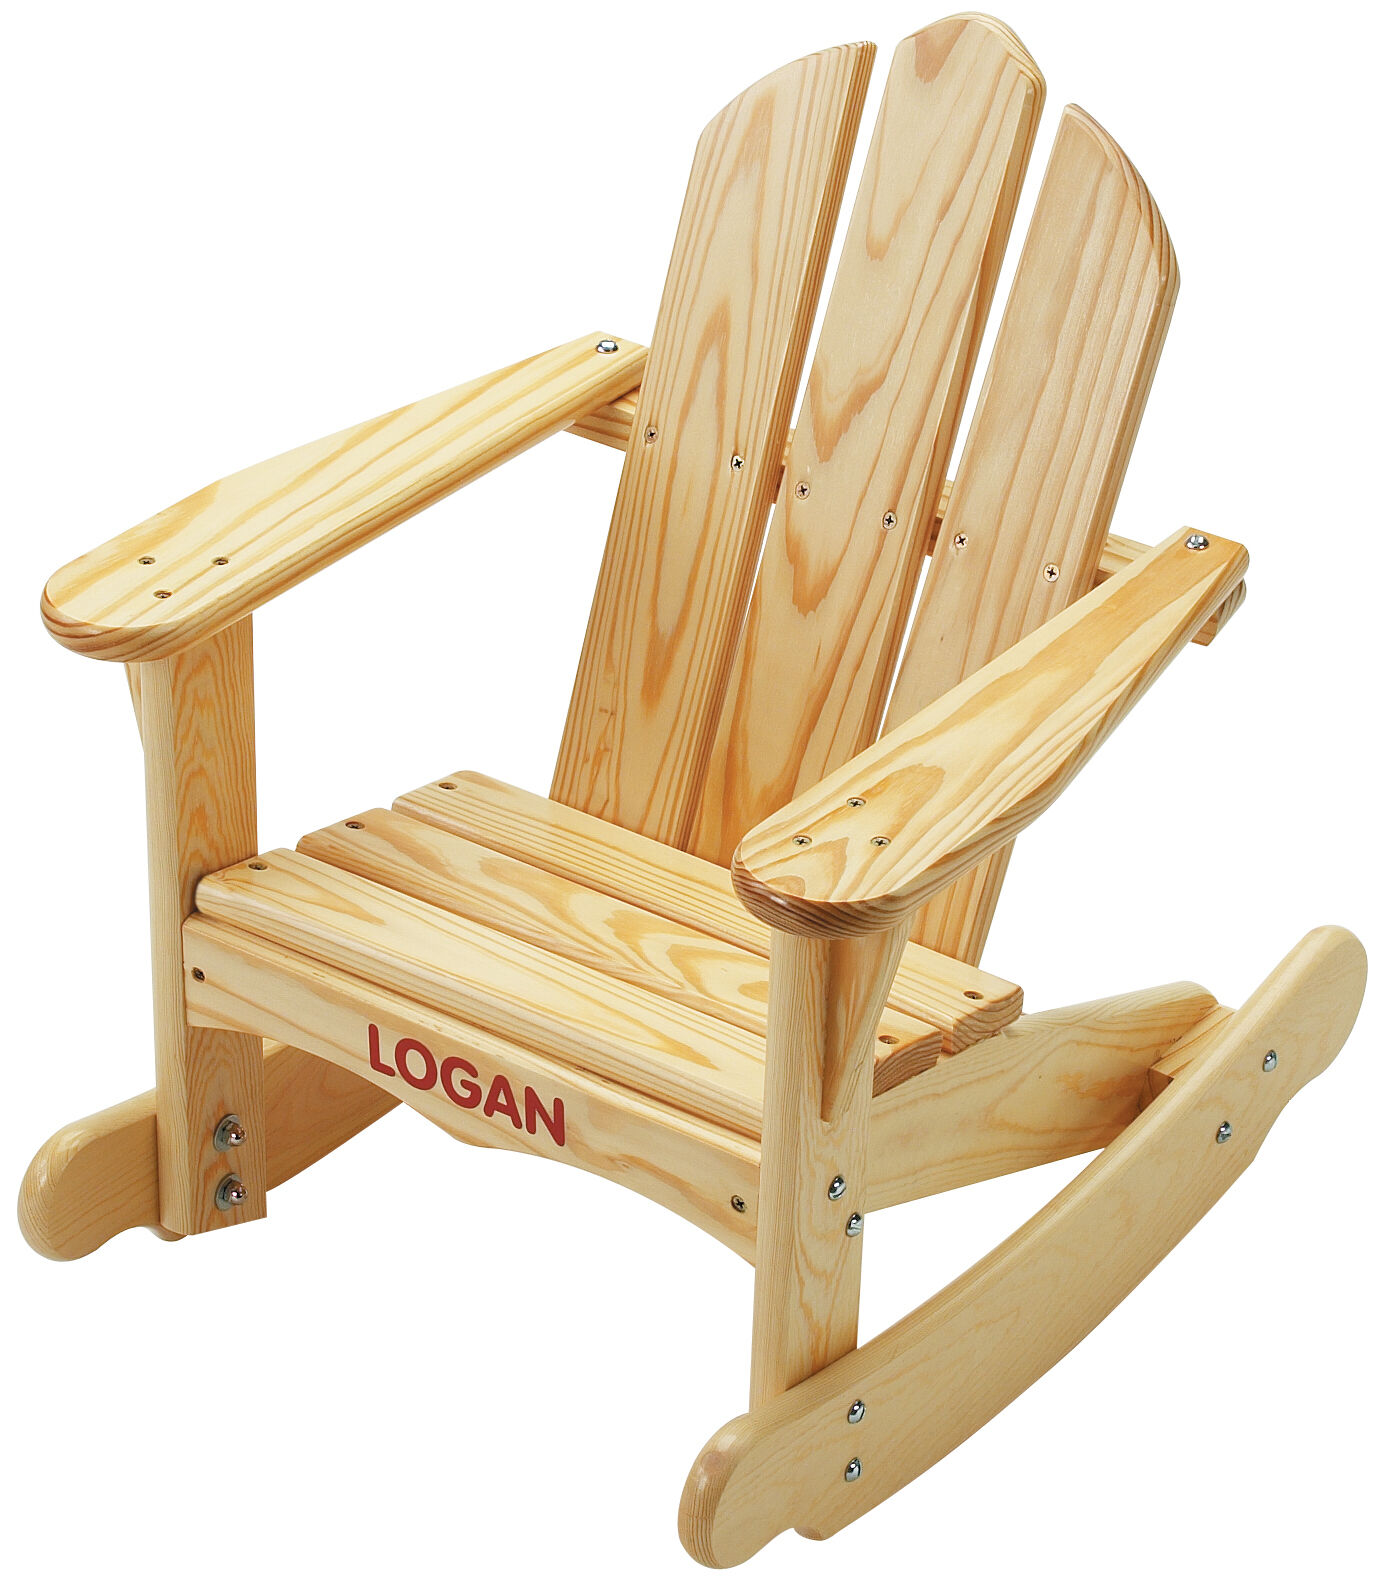 Free Rocking Chair Plans Childrens Wooden Rocking Chair Plans Childrens Rocking Chair